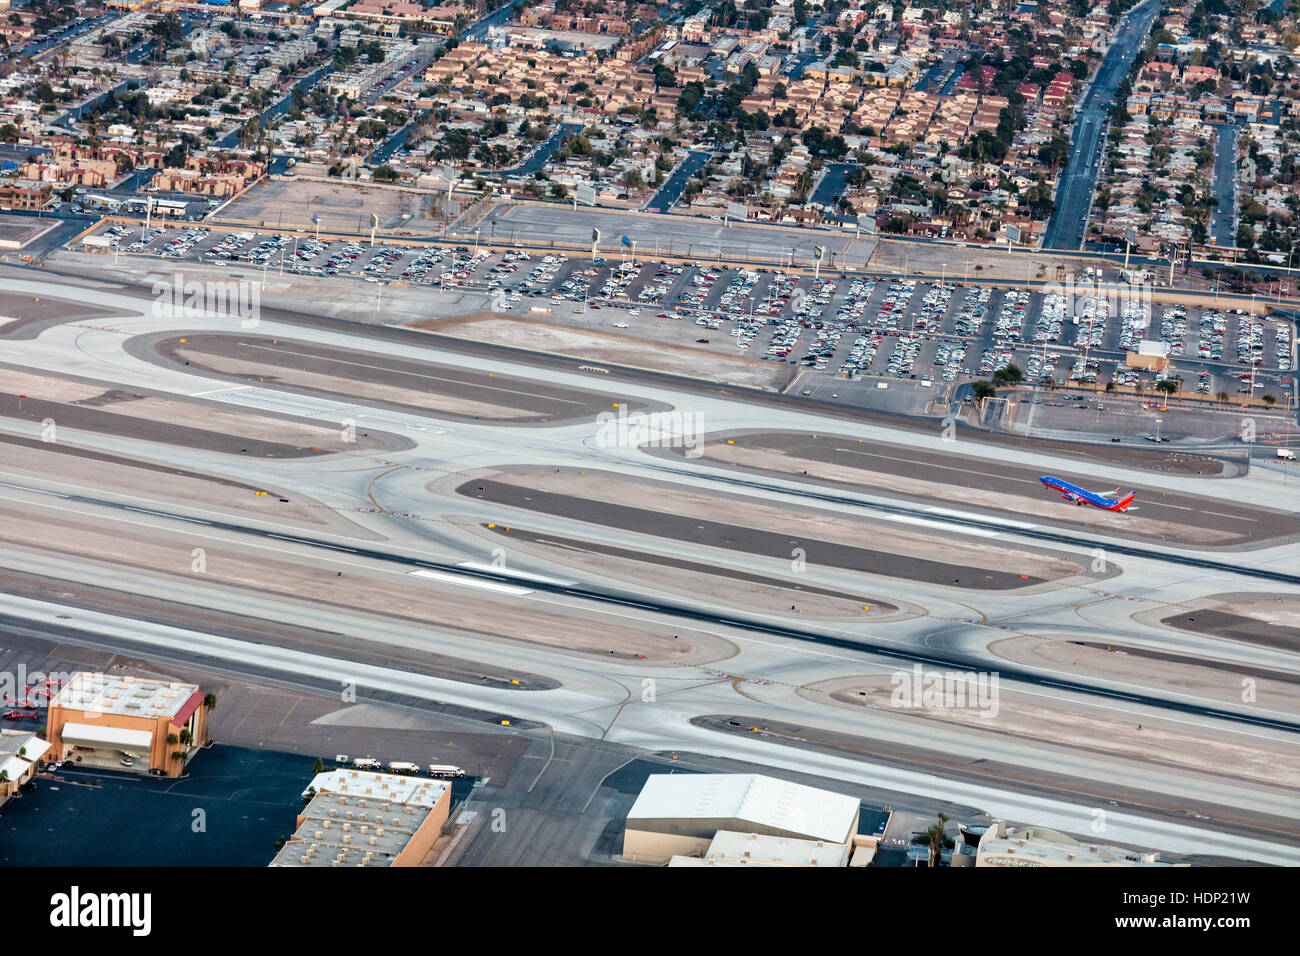 Aerial view of Las Vegas city and airport, Nevada, USA - Stock Image